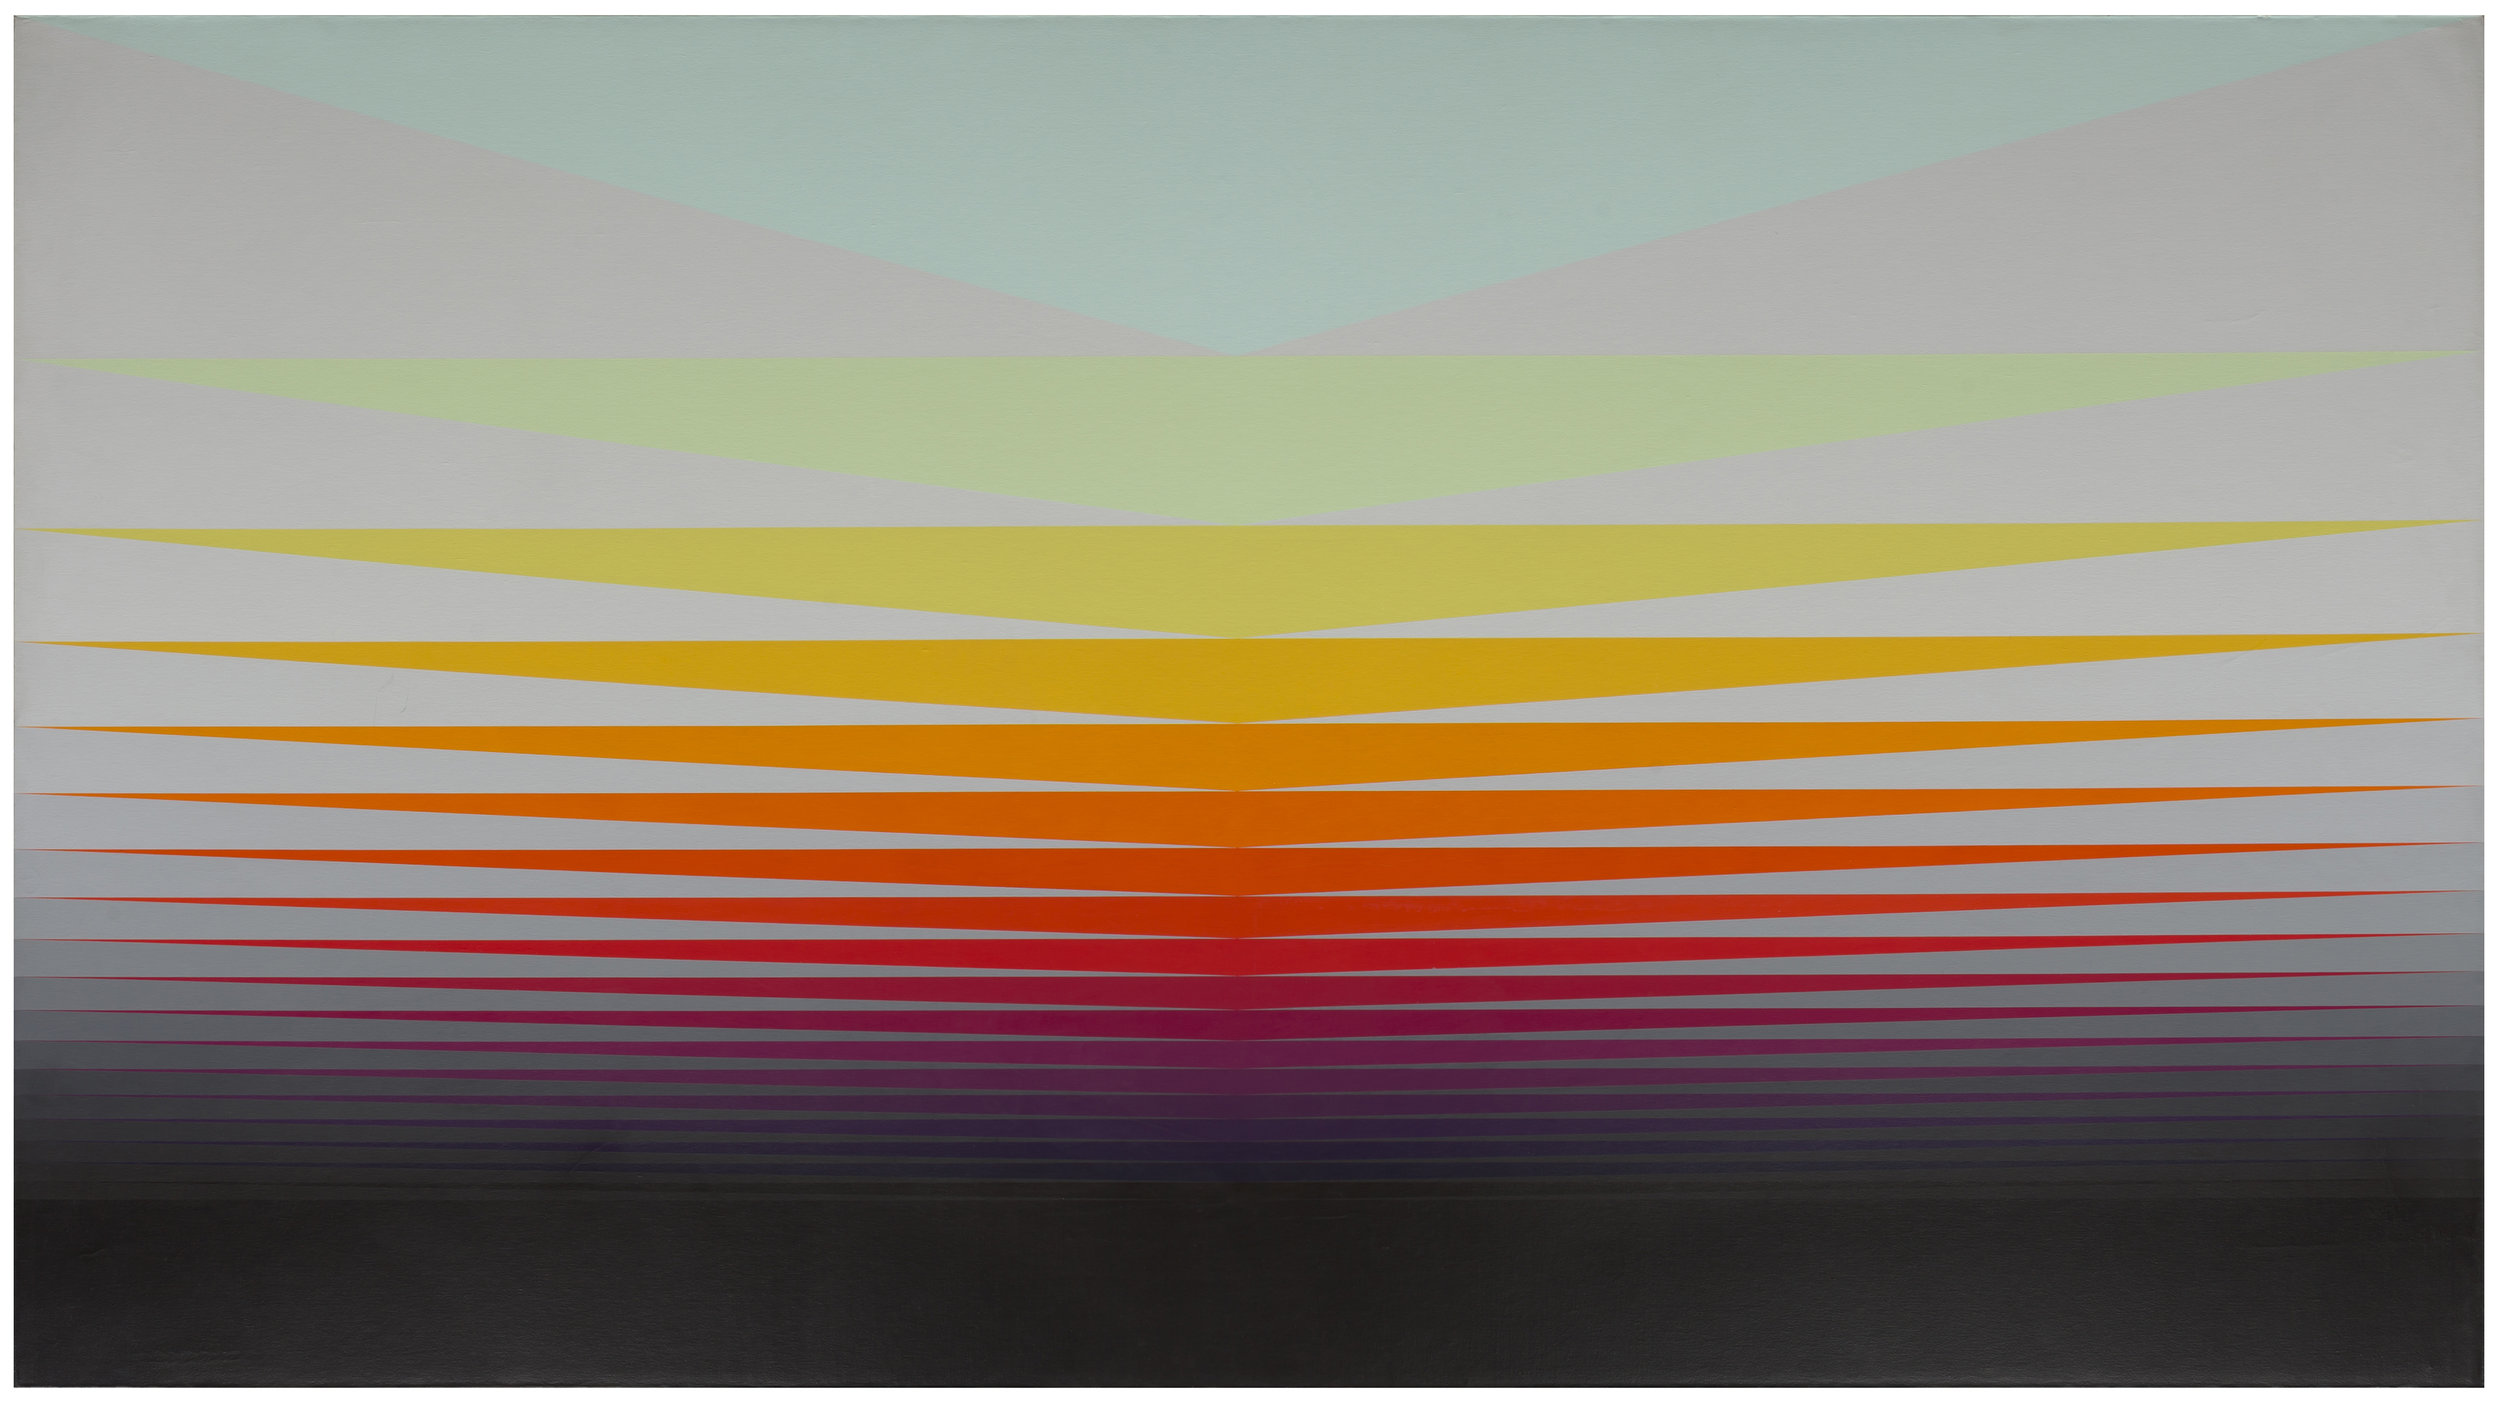 Search for the Elysian Field , 1976  acrylic on canvas 66 x 120 inches; 167.6 x 304.8 centimeters